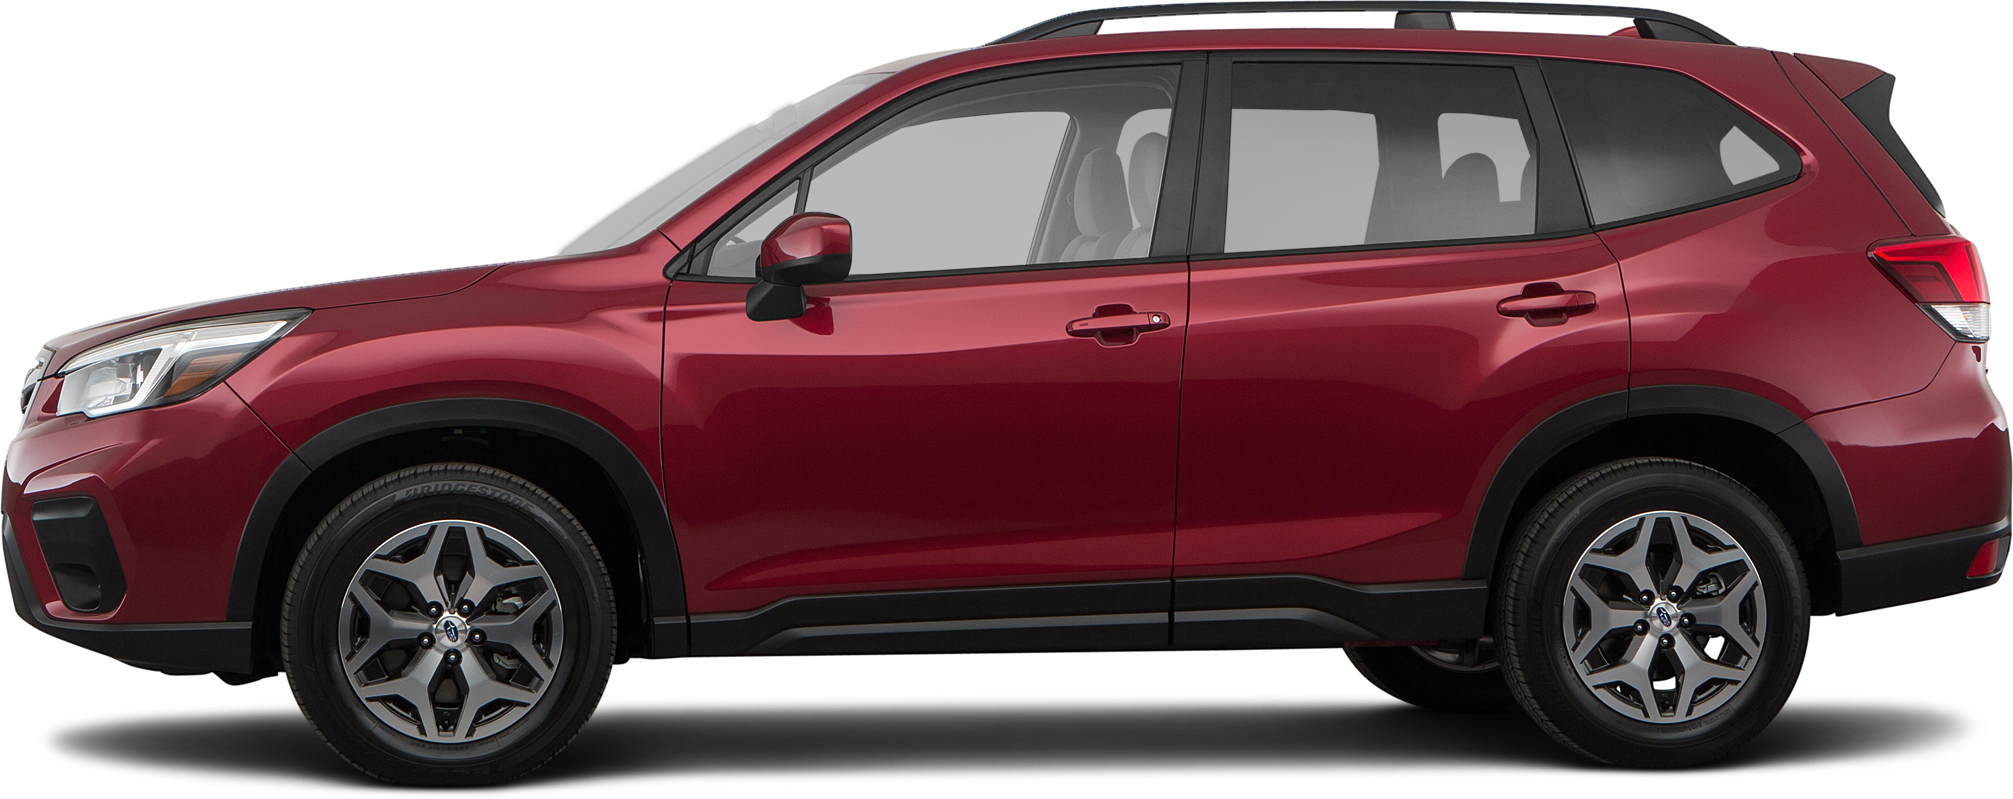 New 2019 Subaru Forester In Columbus Oh At Byers Subaru Dublin